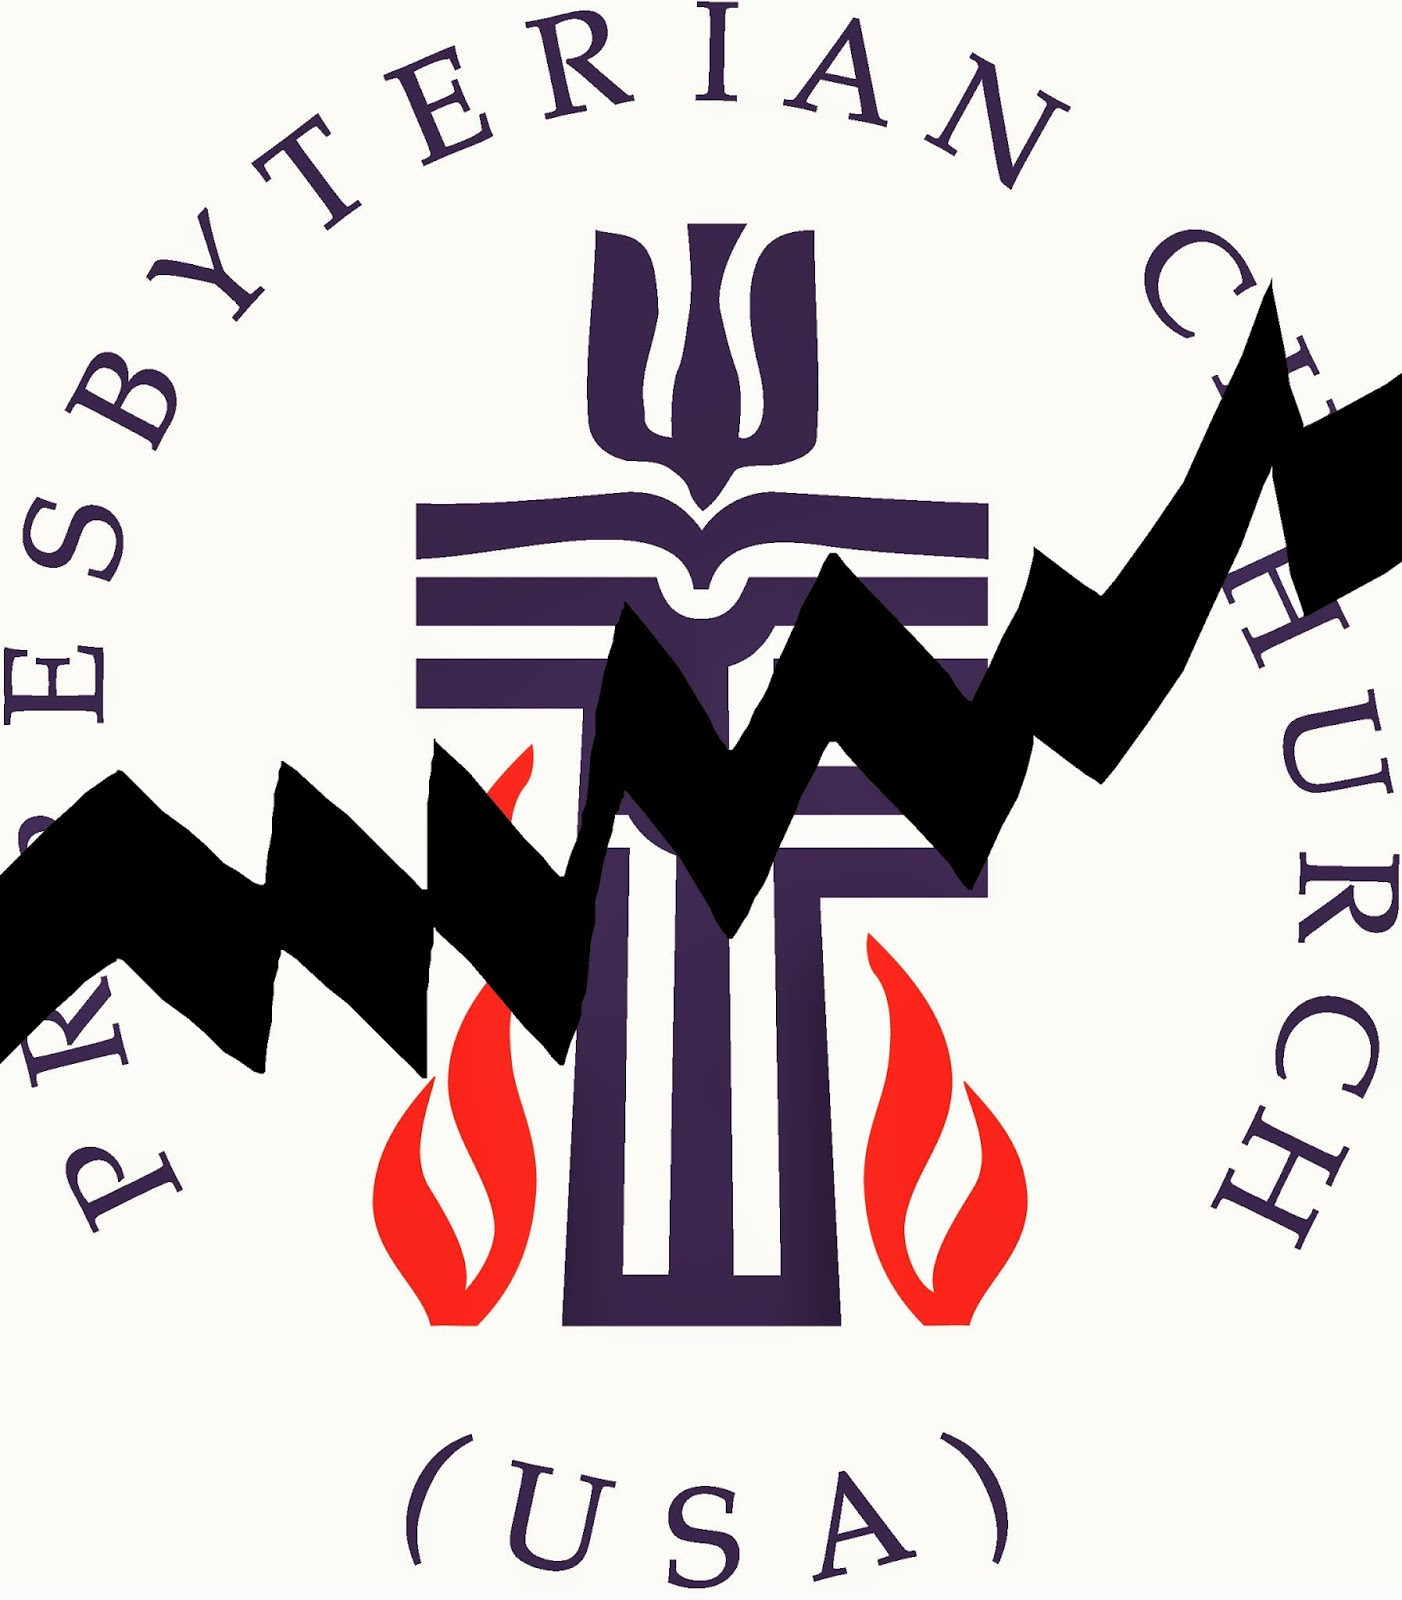 Presbyterian assembly recognizes gay marriage as Christian